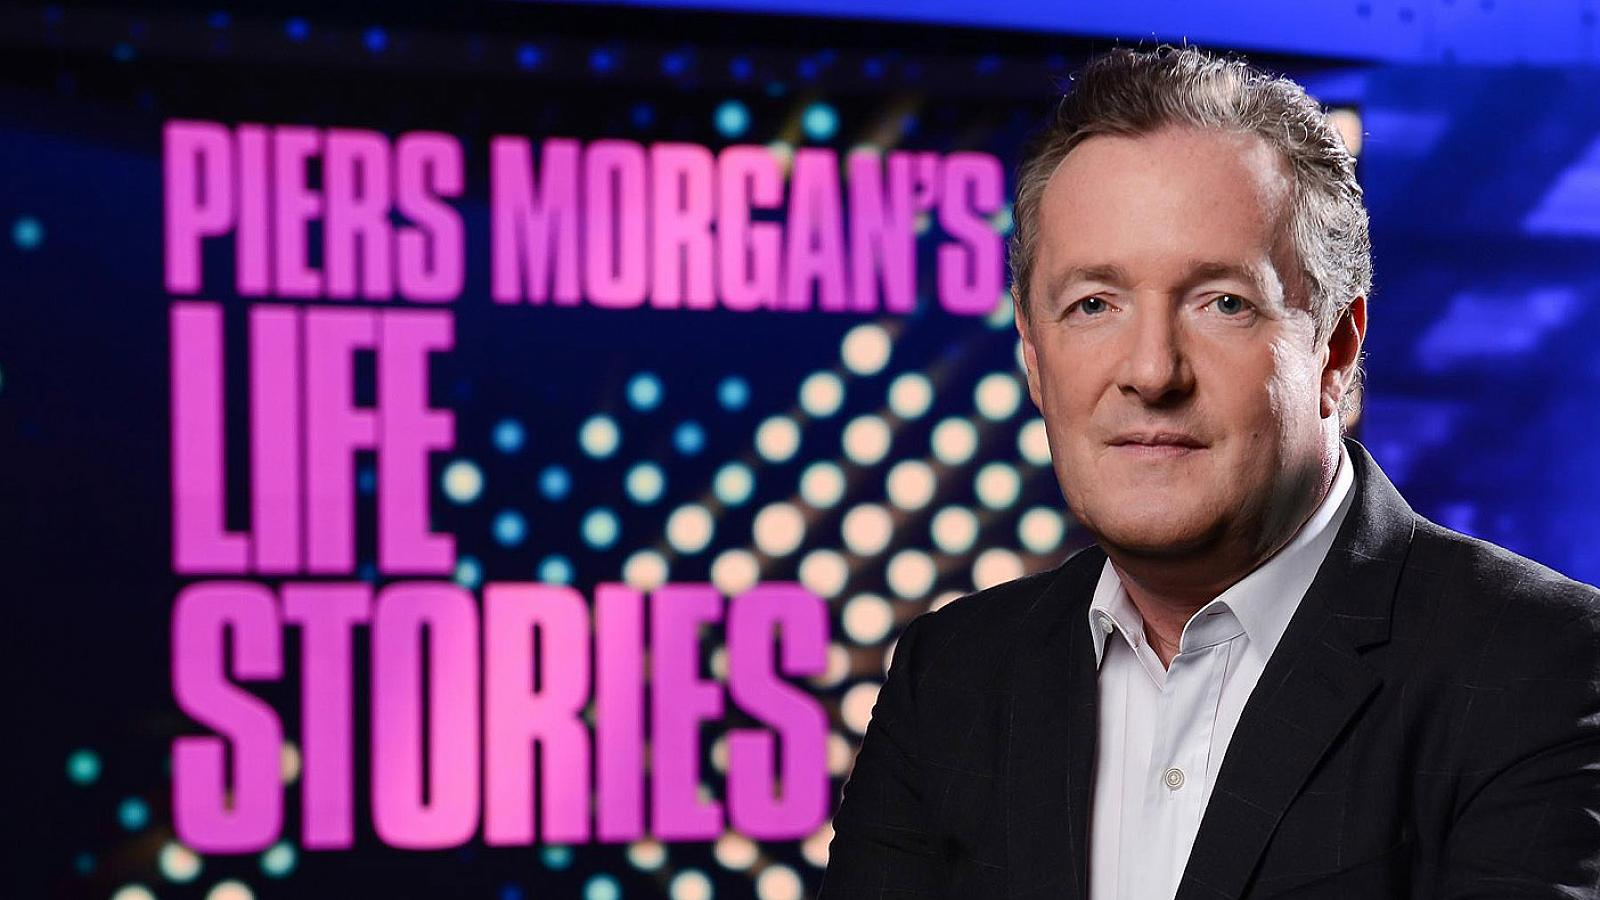 piers morgan life stories with mel b.jpg